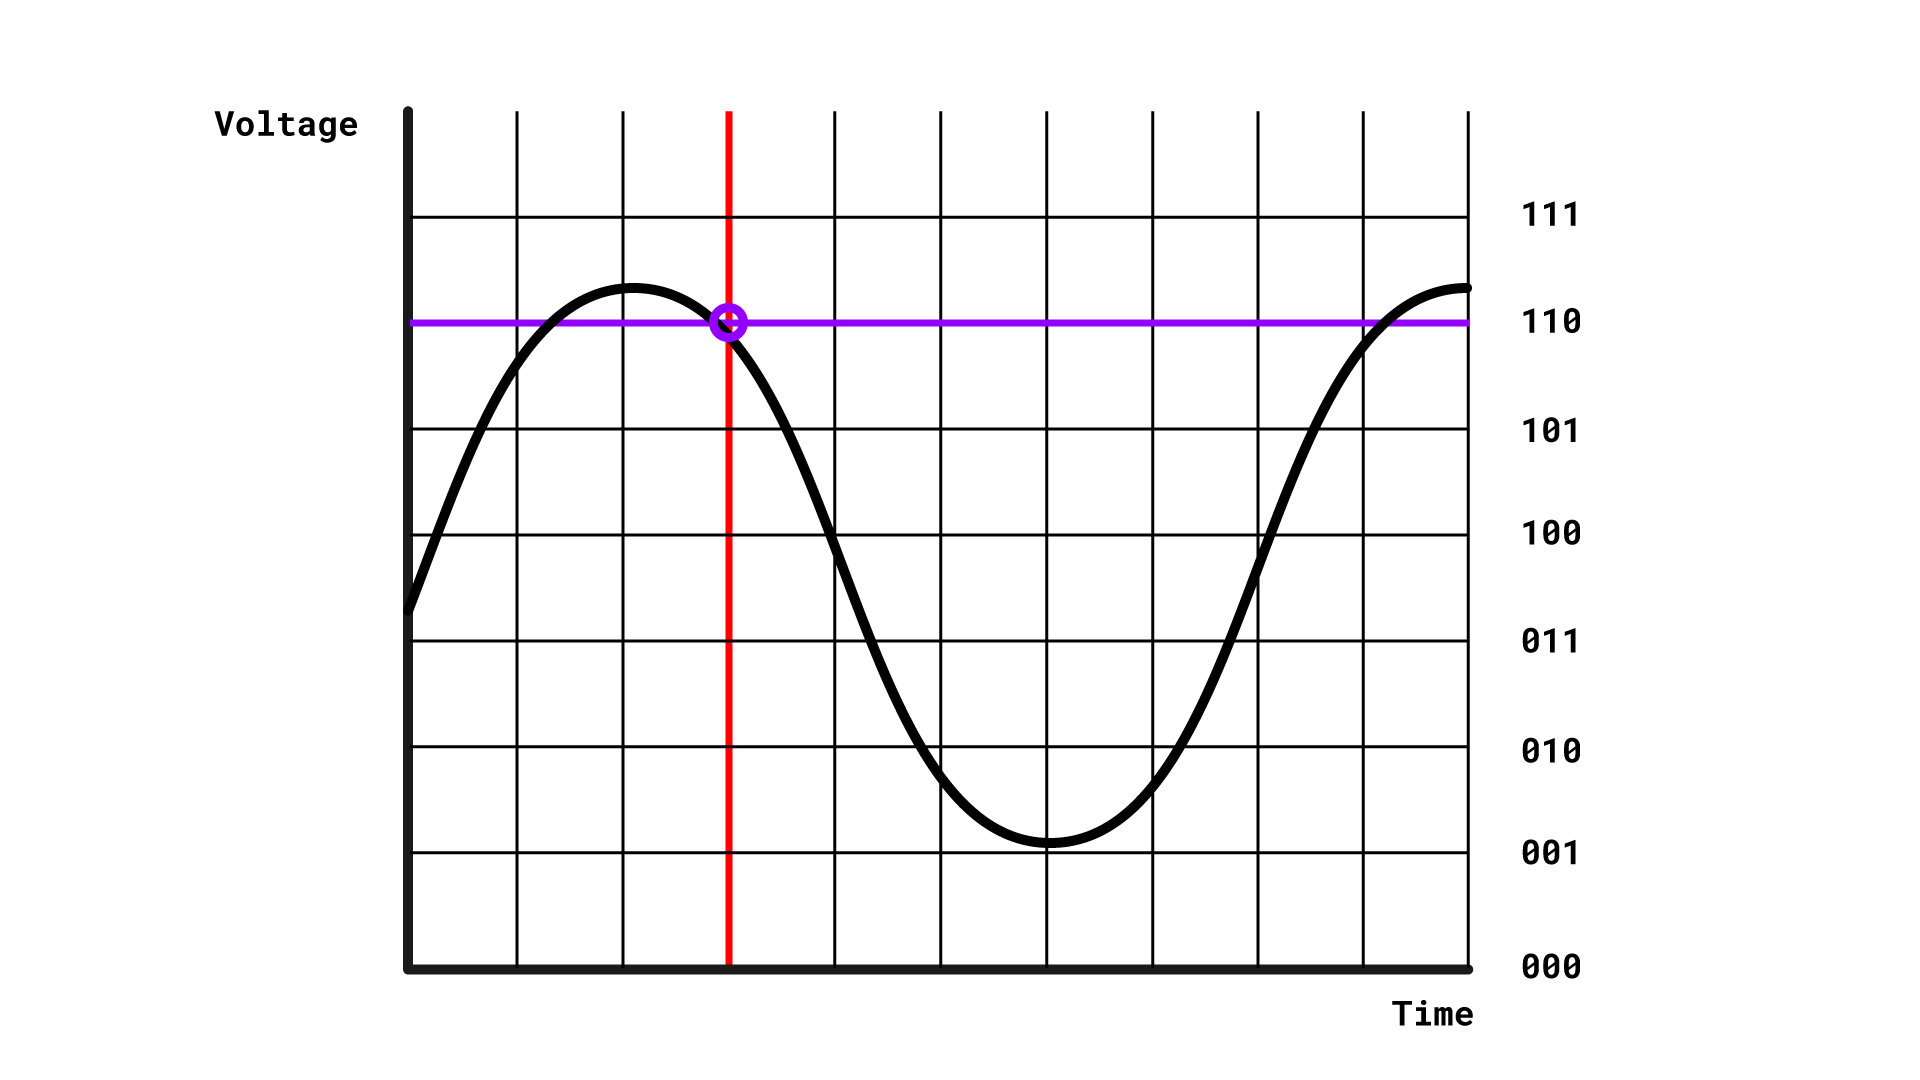 A sine wave representing a sound. Lots of equally spaced vertical lines are drawn on it. At one point approximately 1/3 of the way along the x-axis, one of these is red. 8 equally spaced horizontal lines represent the quantisation levels, and are labelled in binary from 000 to 111. A circle is drawn at the intersection of the vertical red line and the quantisation level closest to the signal at that point.